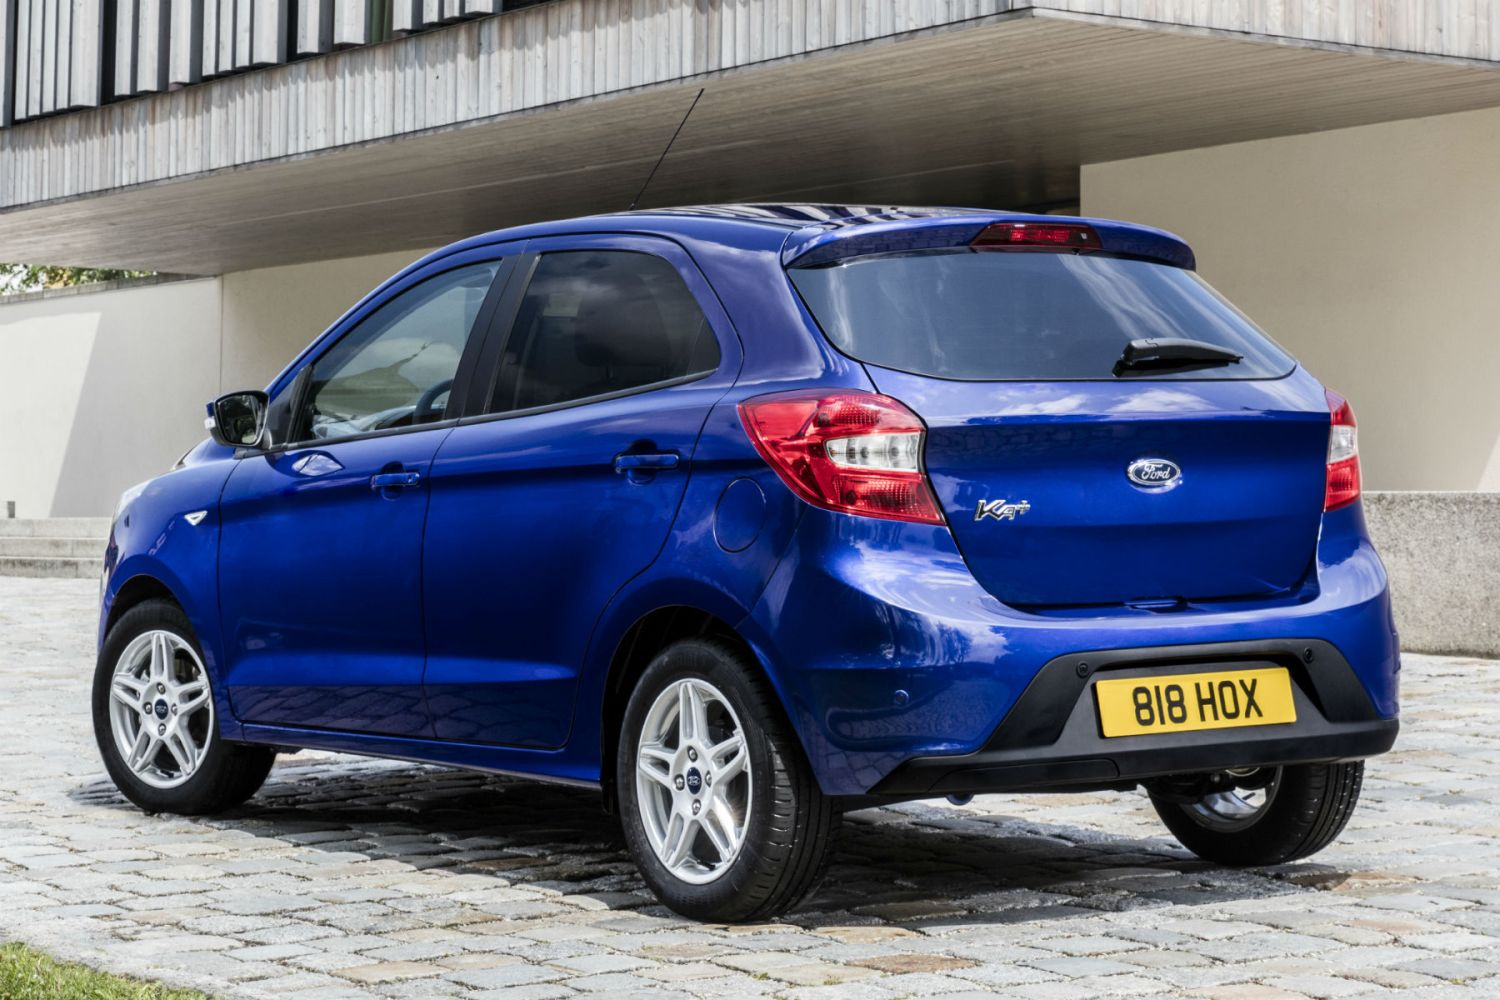 The new Ford Ka+: all you need to know